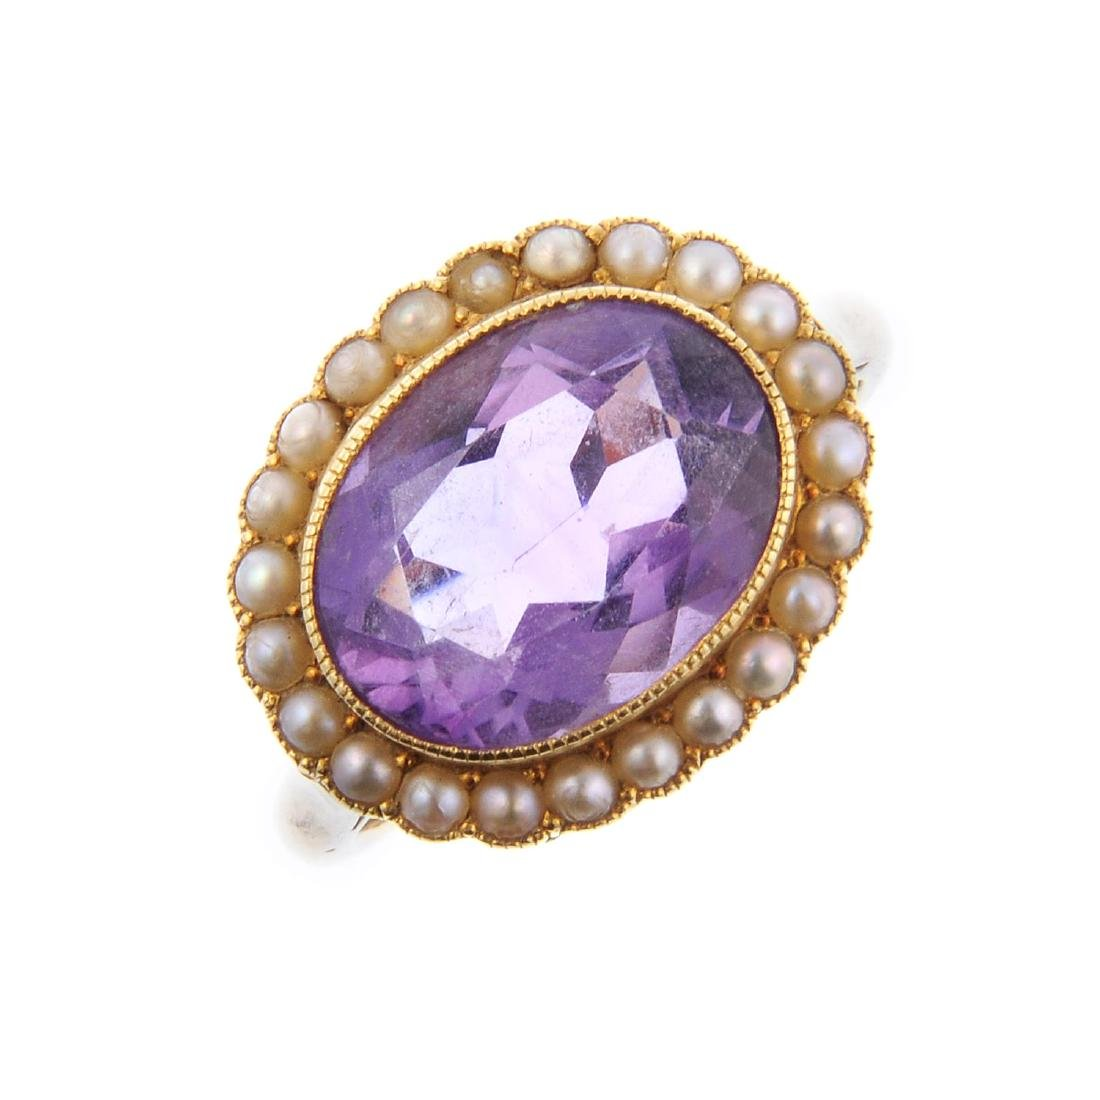 An amethyst and split pearl ring. Designed as an oval